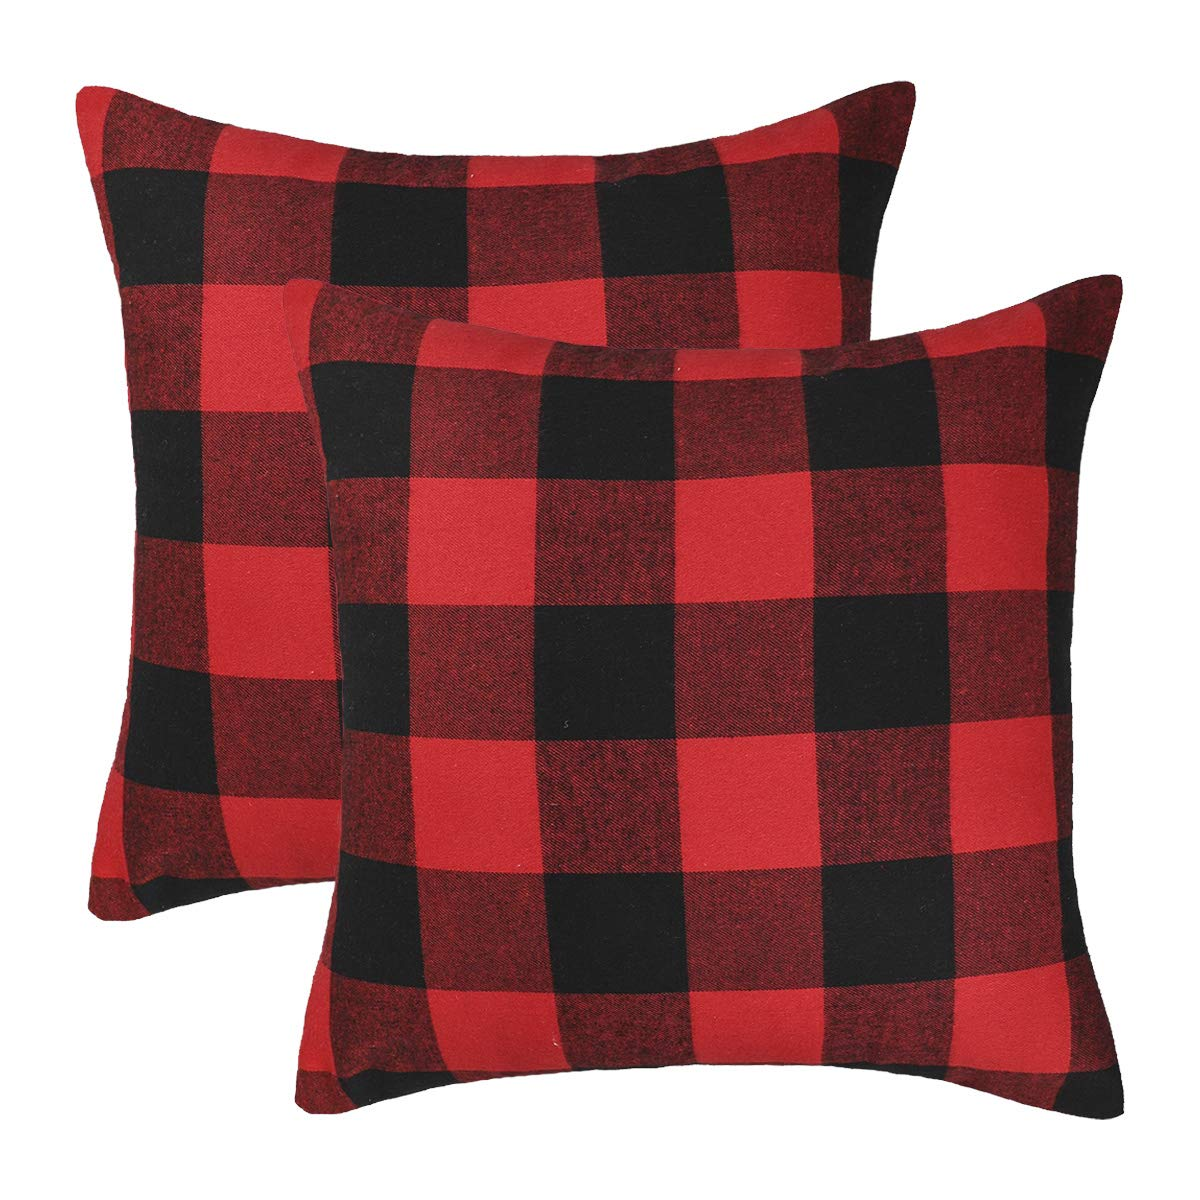 4TH Emotion Set of 2 Christmas Buffalo Check Plaid Throw Pillow Covers Cushion Case Cotton Polyester for Farmhouse Home Decor Red and Black, 18 x 18 Inches